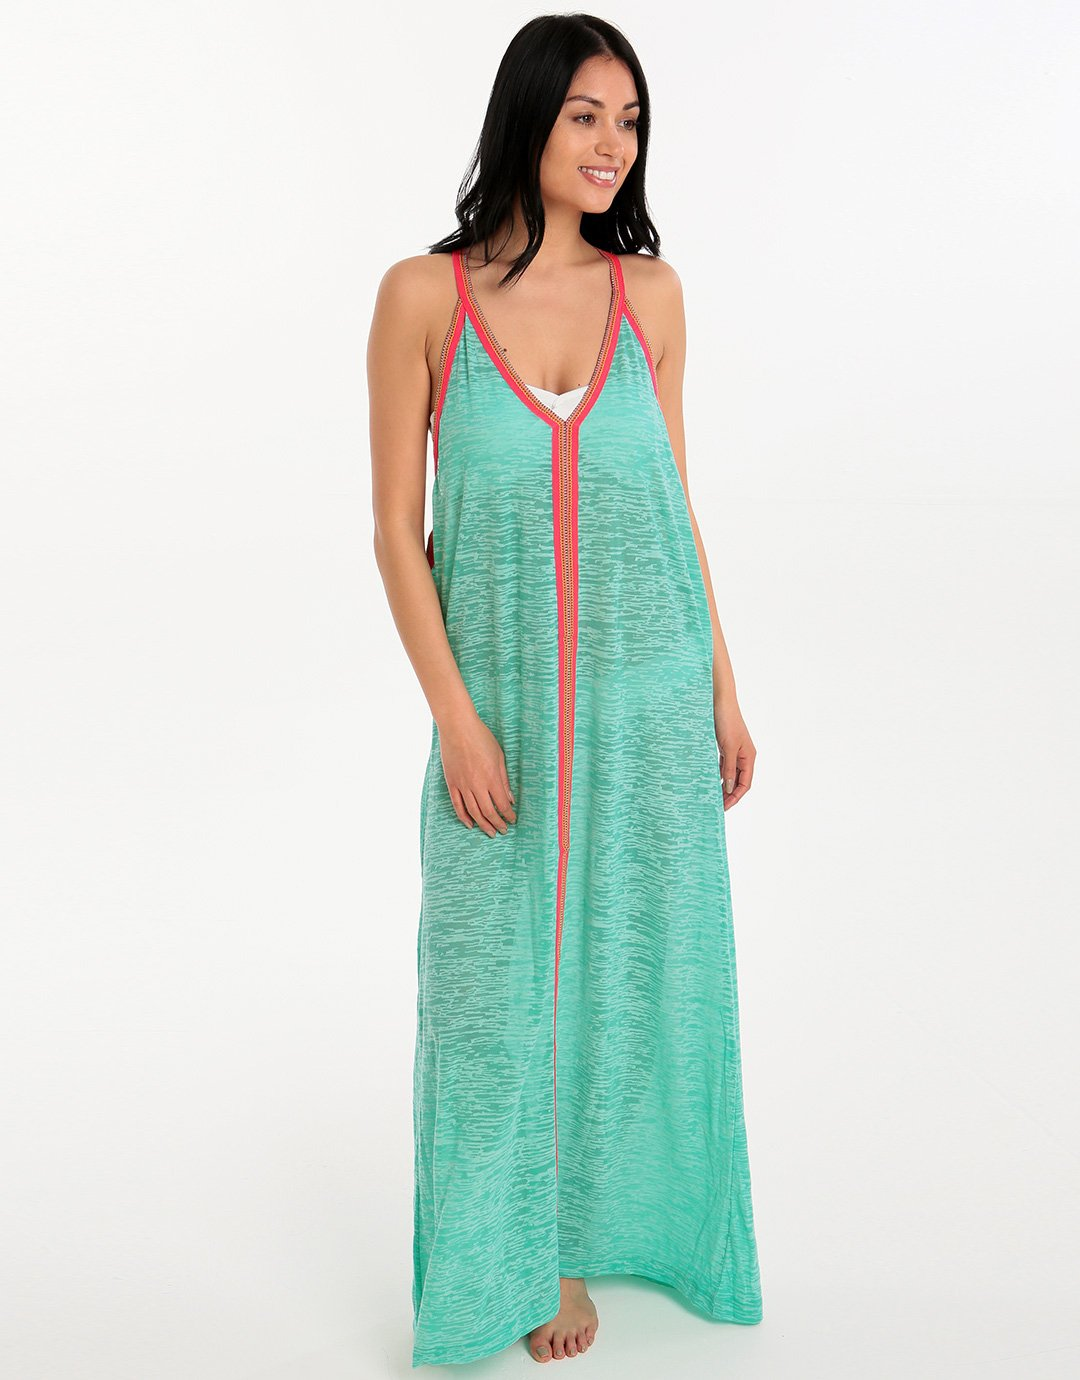 2555567cc6 Pitusa Inca Sun Dress - Mint | Simply Beach UK